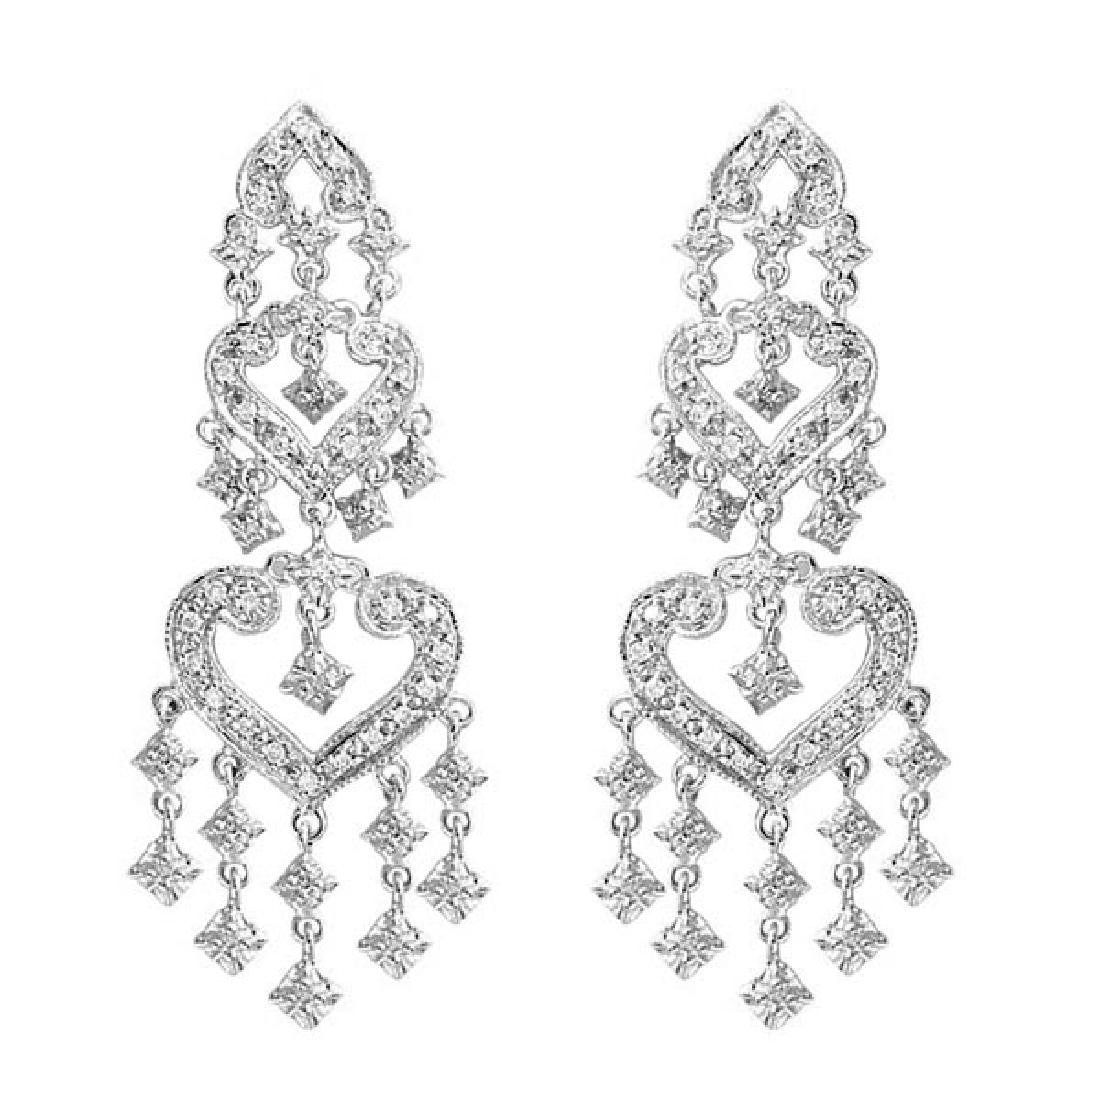 Diamond Chandelier Earrings in 14k White Gold (1.01ctw)